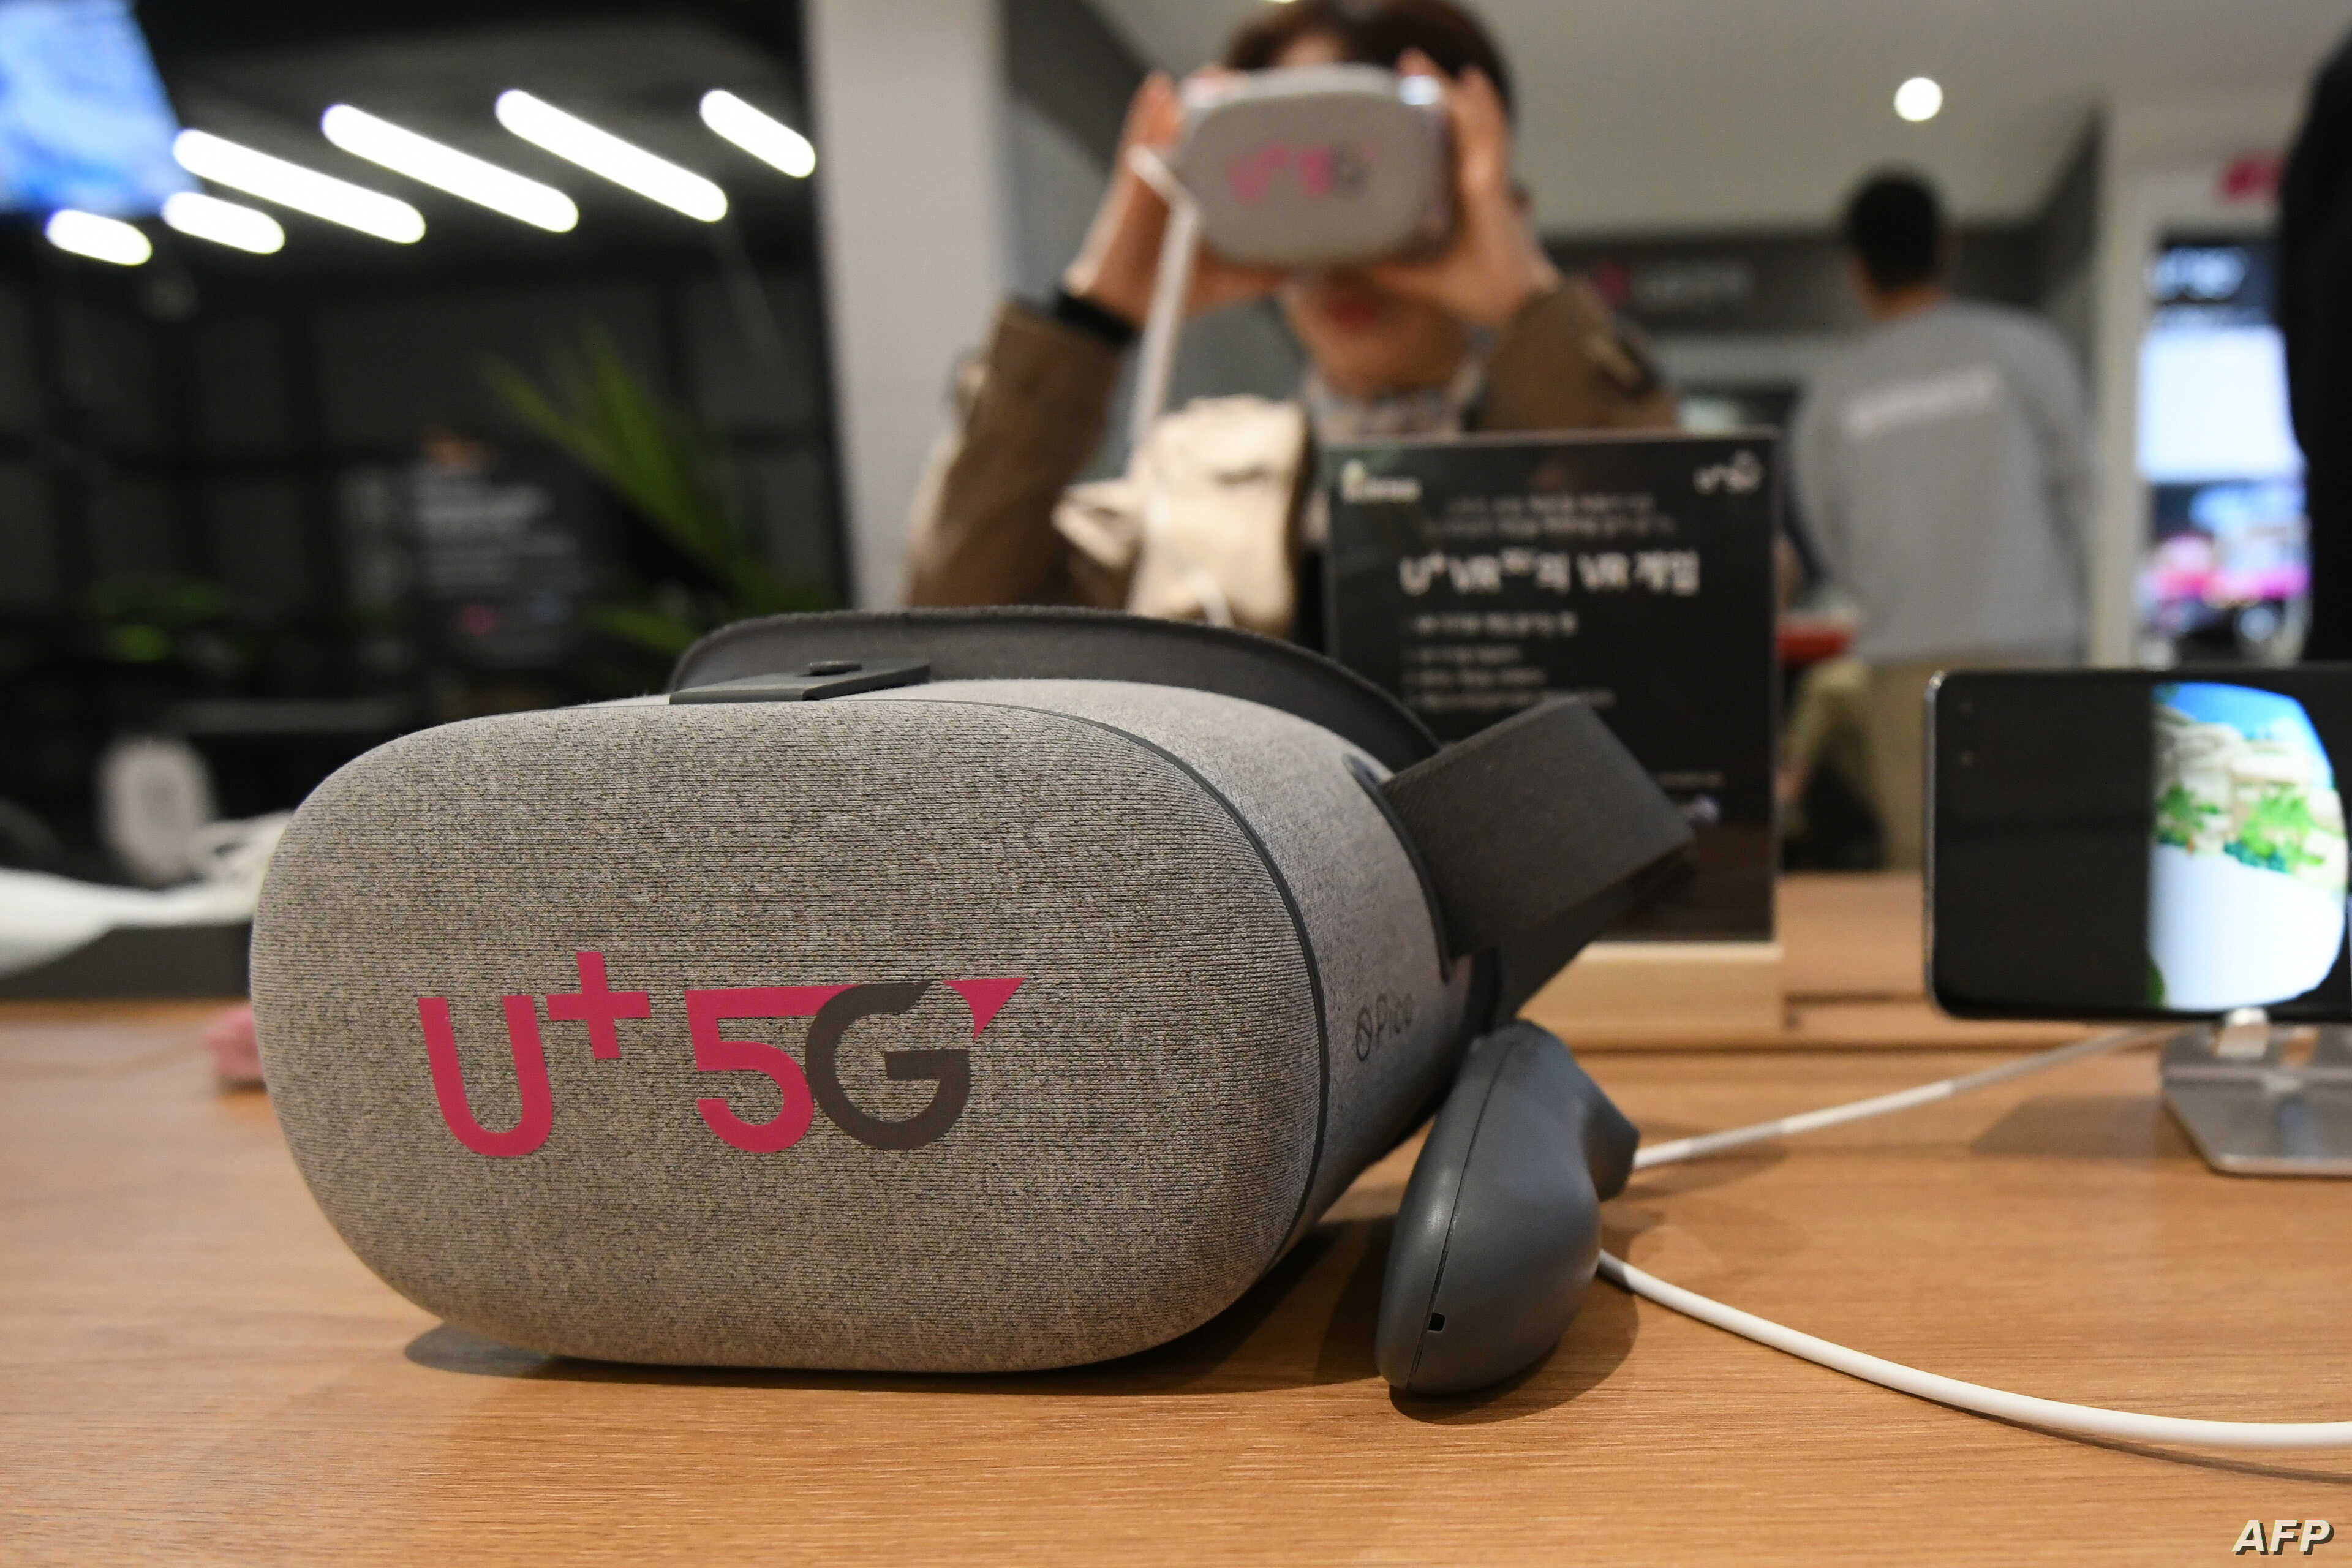 Visitors test a VR device using the 5G network at a pop-up store of South Korean telecom operator LG Uplus in Seoul, April 2, 2019.